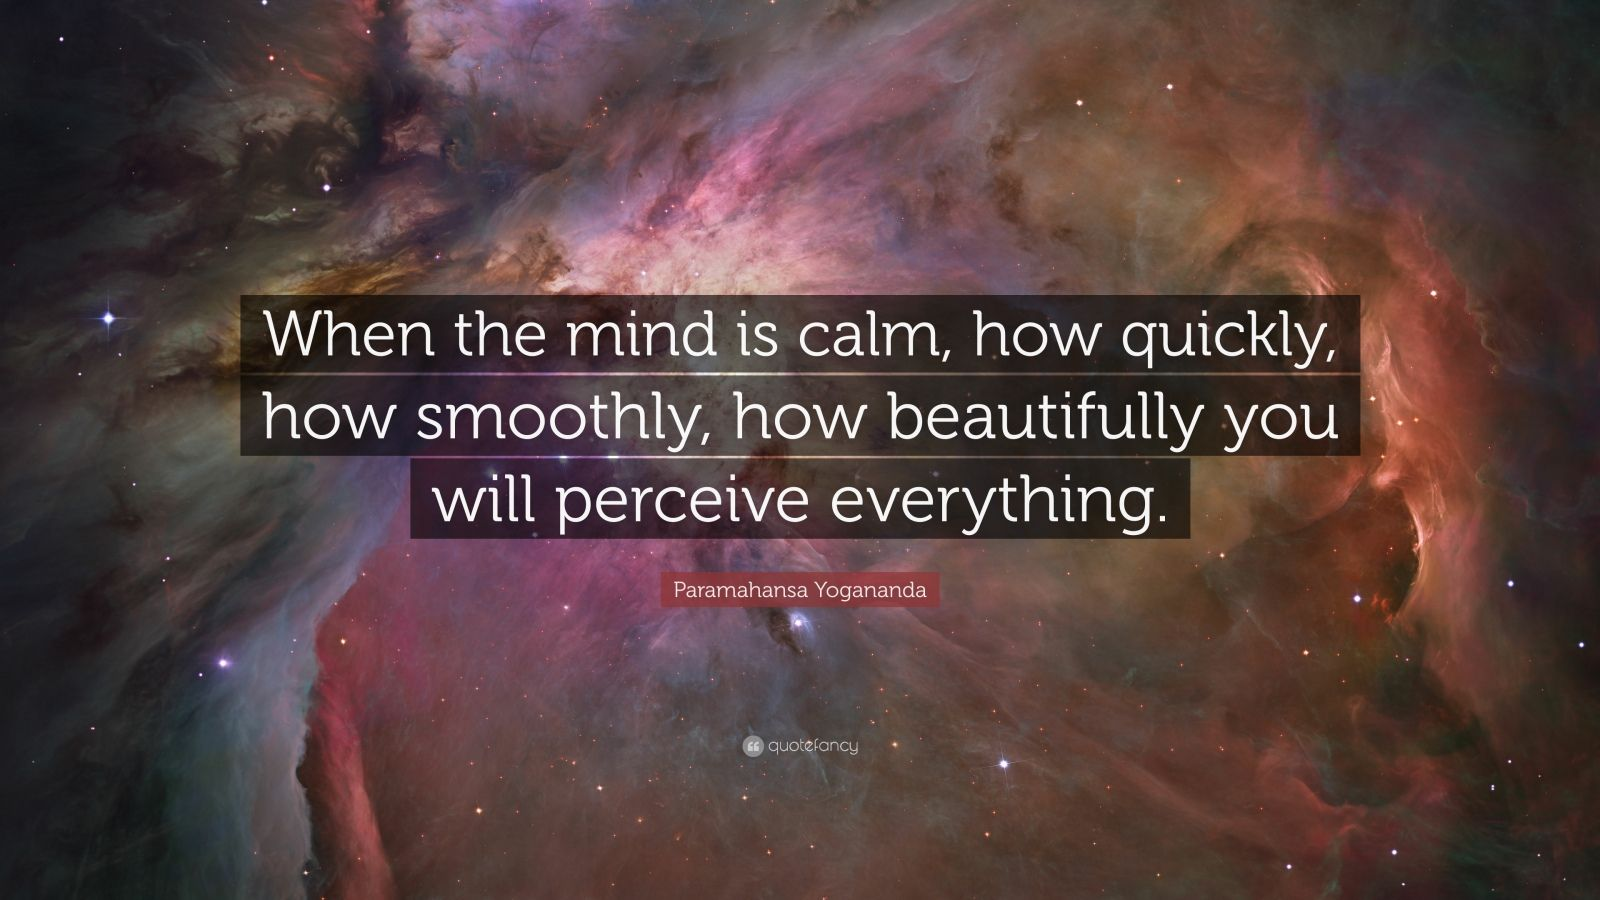 """Paramahansa Yogananda Quote: """"When the mind is calm, how quickly, how smoothly, how beautifully you will perceive everything."""""""